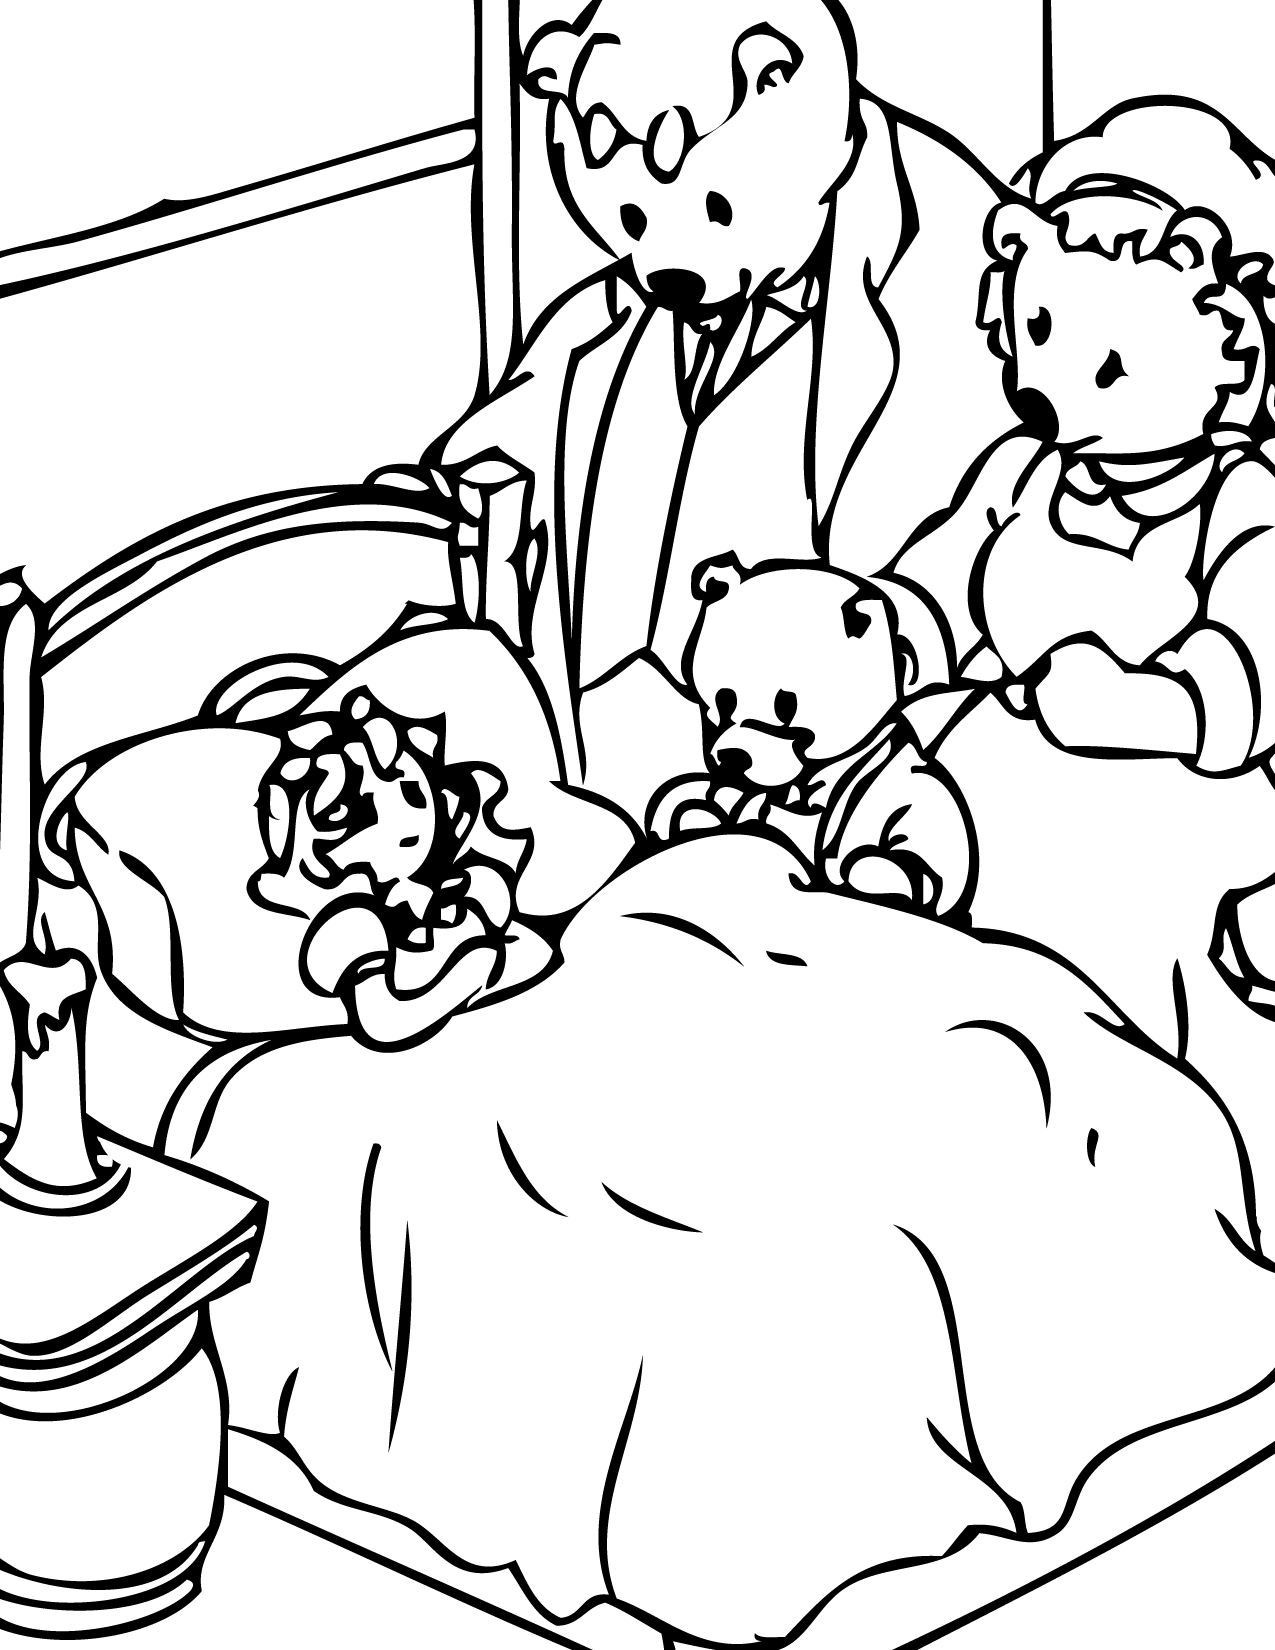 1275x1650 Coloring Pages For Usmc Inspiration Coloring Color Book Printable